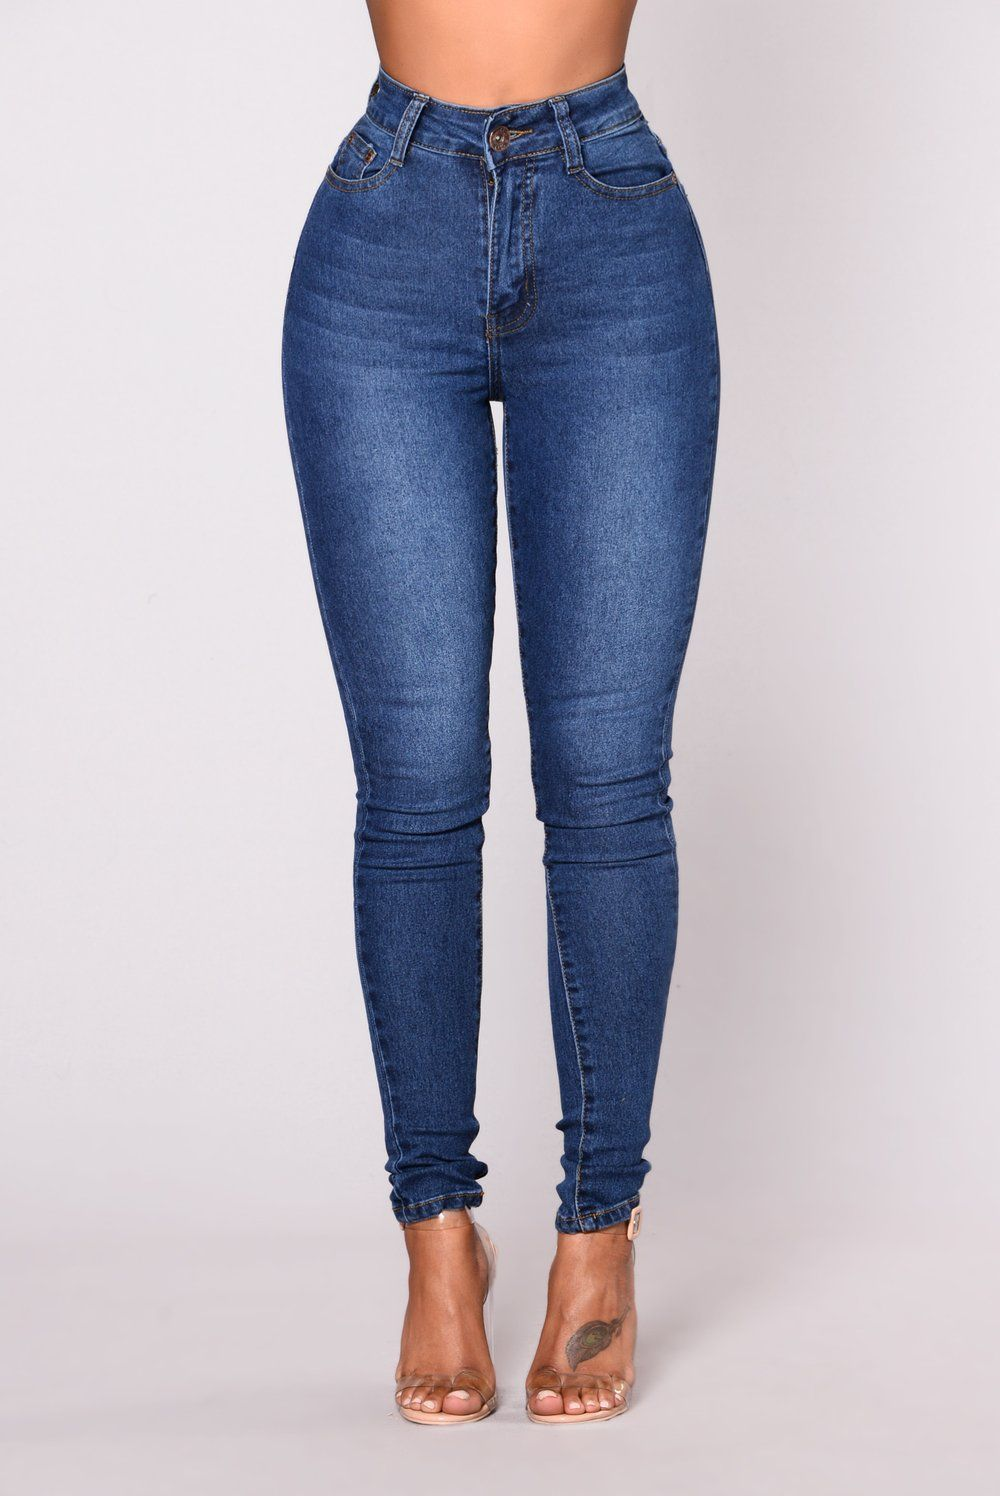 Designed Jeans For Women Skinny Jeans Straight Leg Jeans Uniqlo Selvedge Skinny Fit Work Trousers Stylish Trouser Balmain Jeans